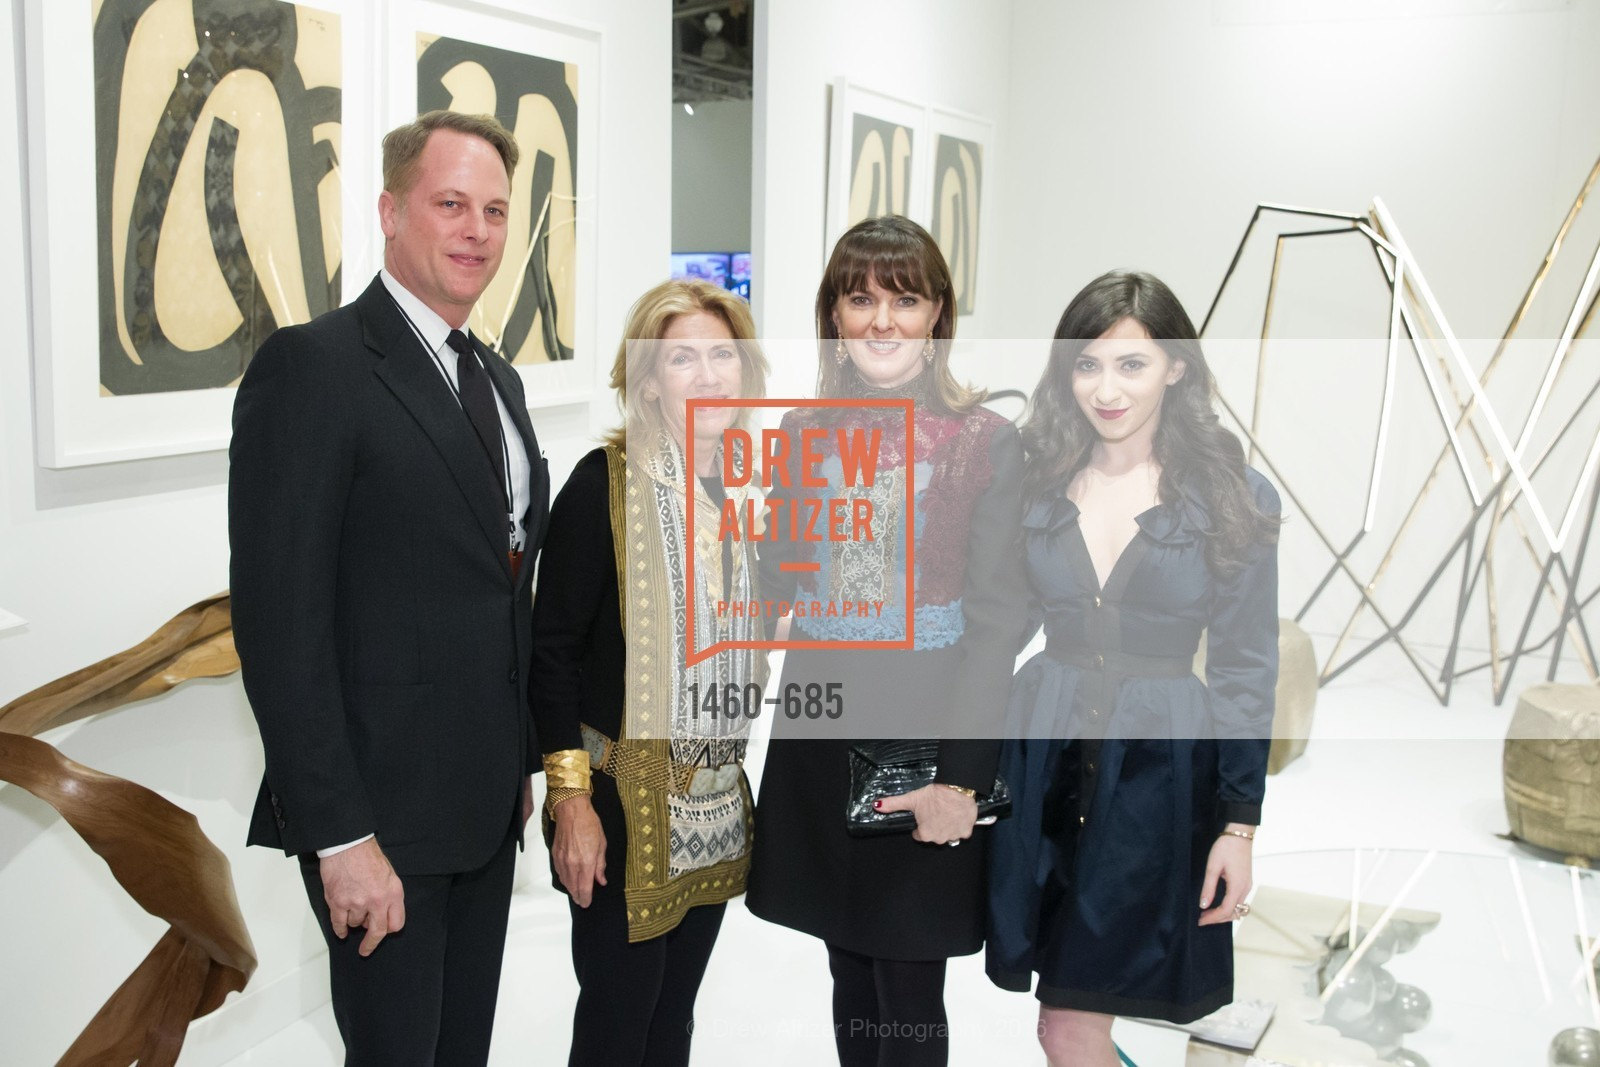 Todd Merrill, Cathy Topham, Allison Speer, Anya Firestone, FOG Design+Art Preview Gala, Fort Mason Center Festival Pavilion, January 13th, 2016,Drew Altizer, Drew Altizer Photography, full-service agency, private events, San Francisco photographer, photographer california